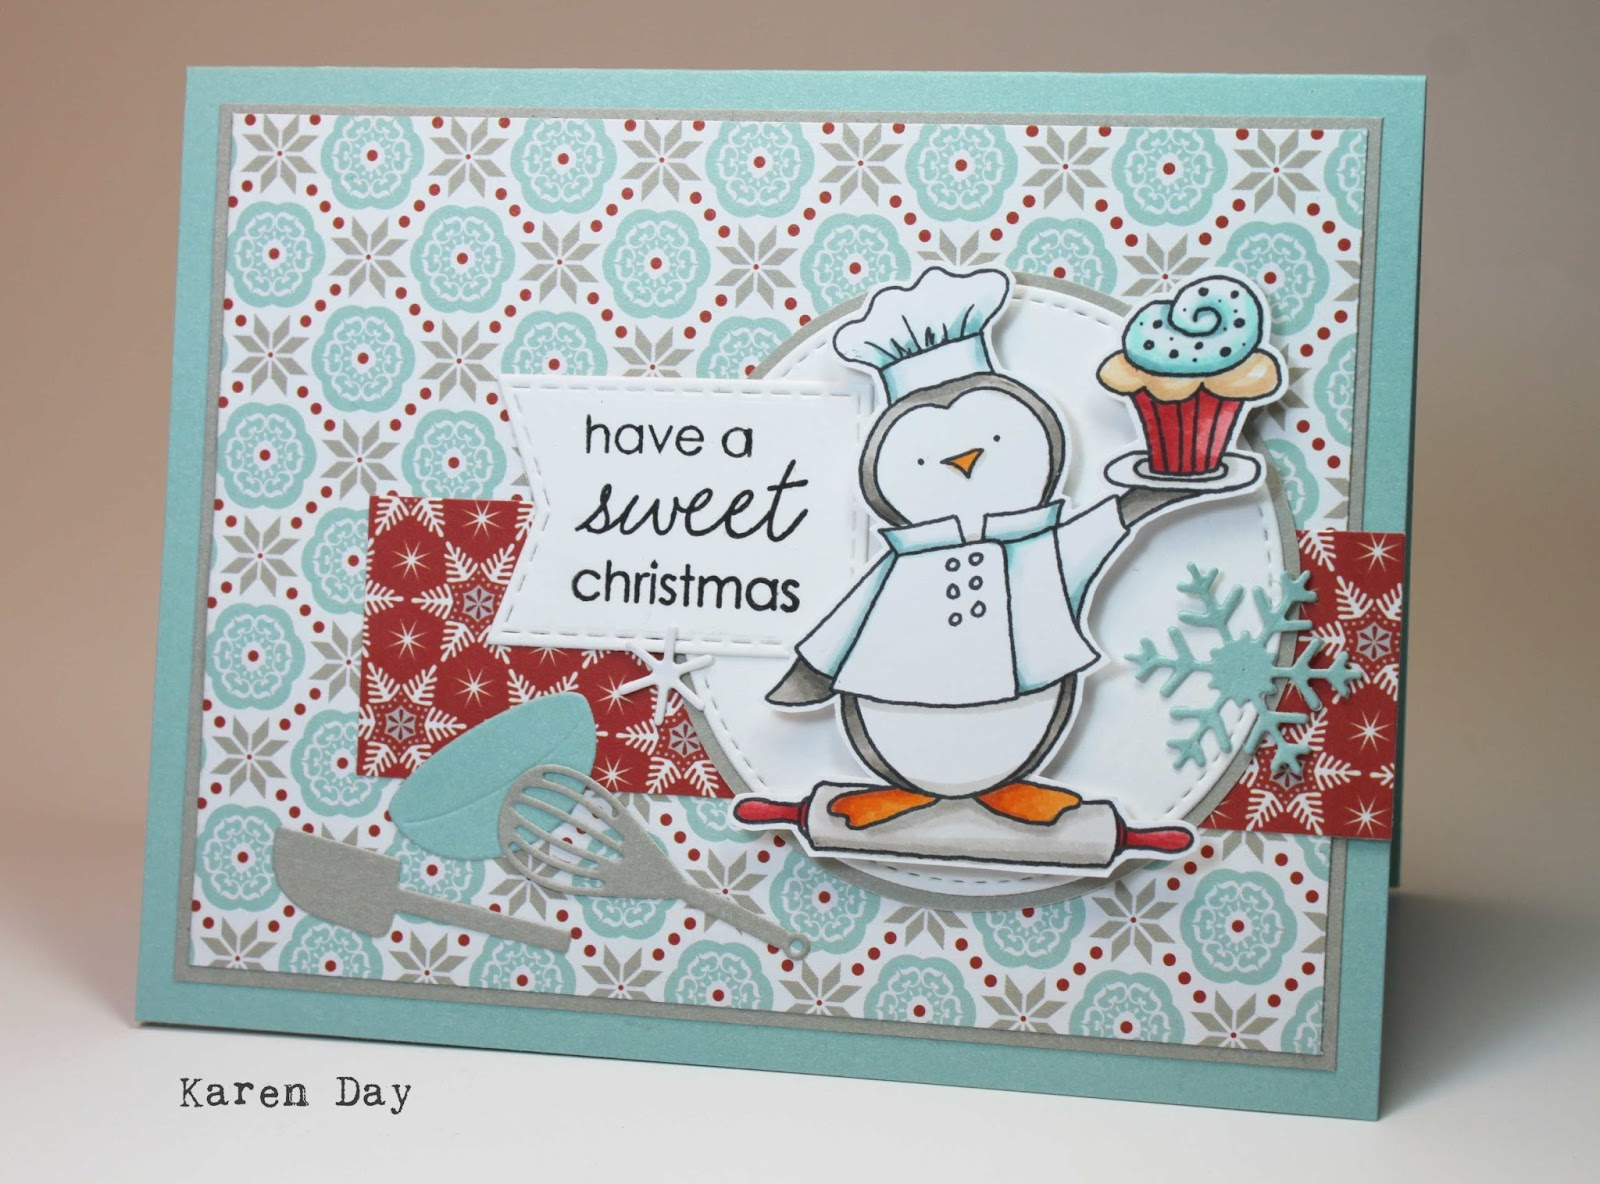 Karens creations a sweet christmas card i got these adorable kitchen dies from your next stamp this fall so i added a few along with some snowflakes i fussy cut out my penguin and popped him up kristyandbryce Gallery